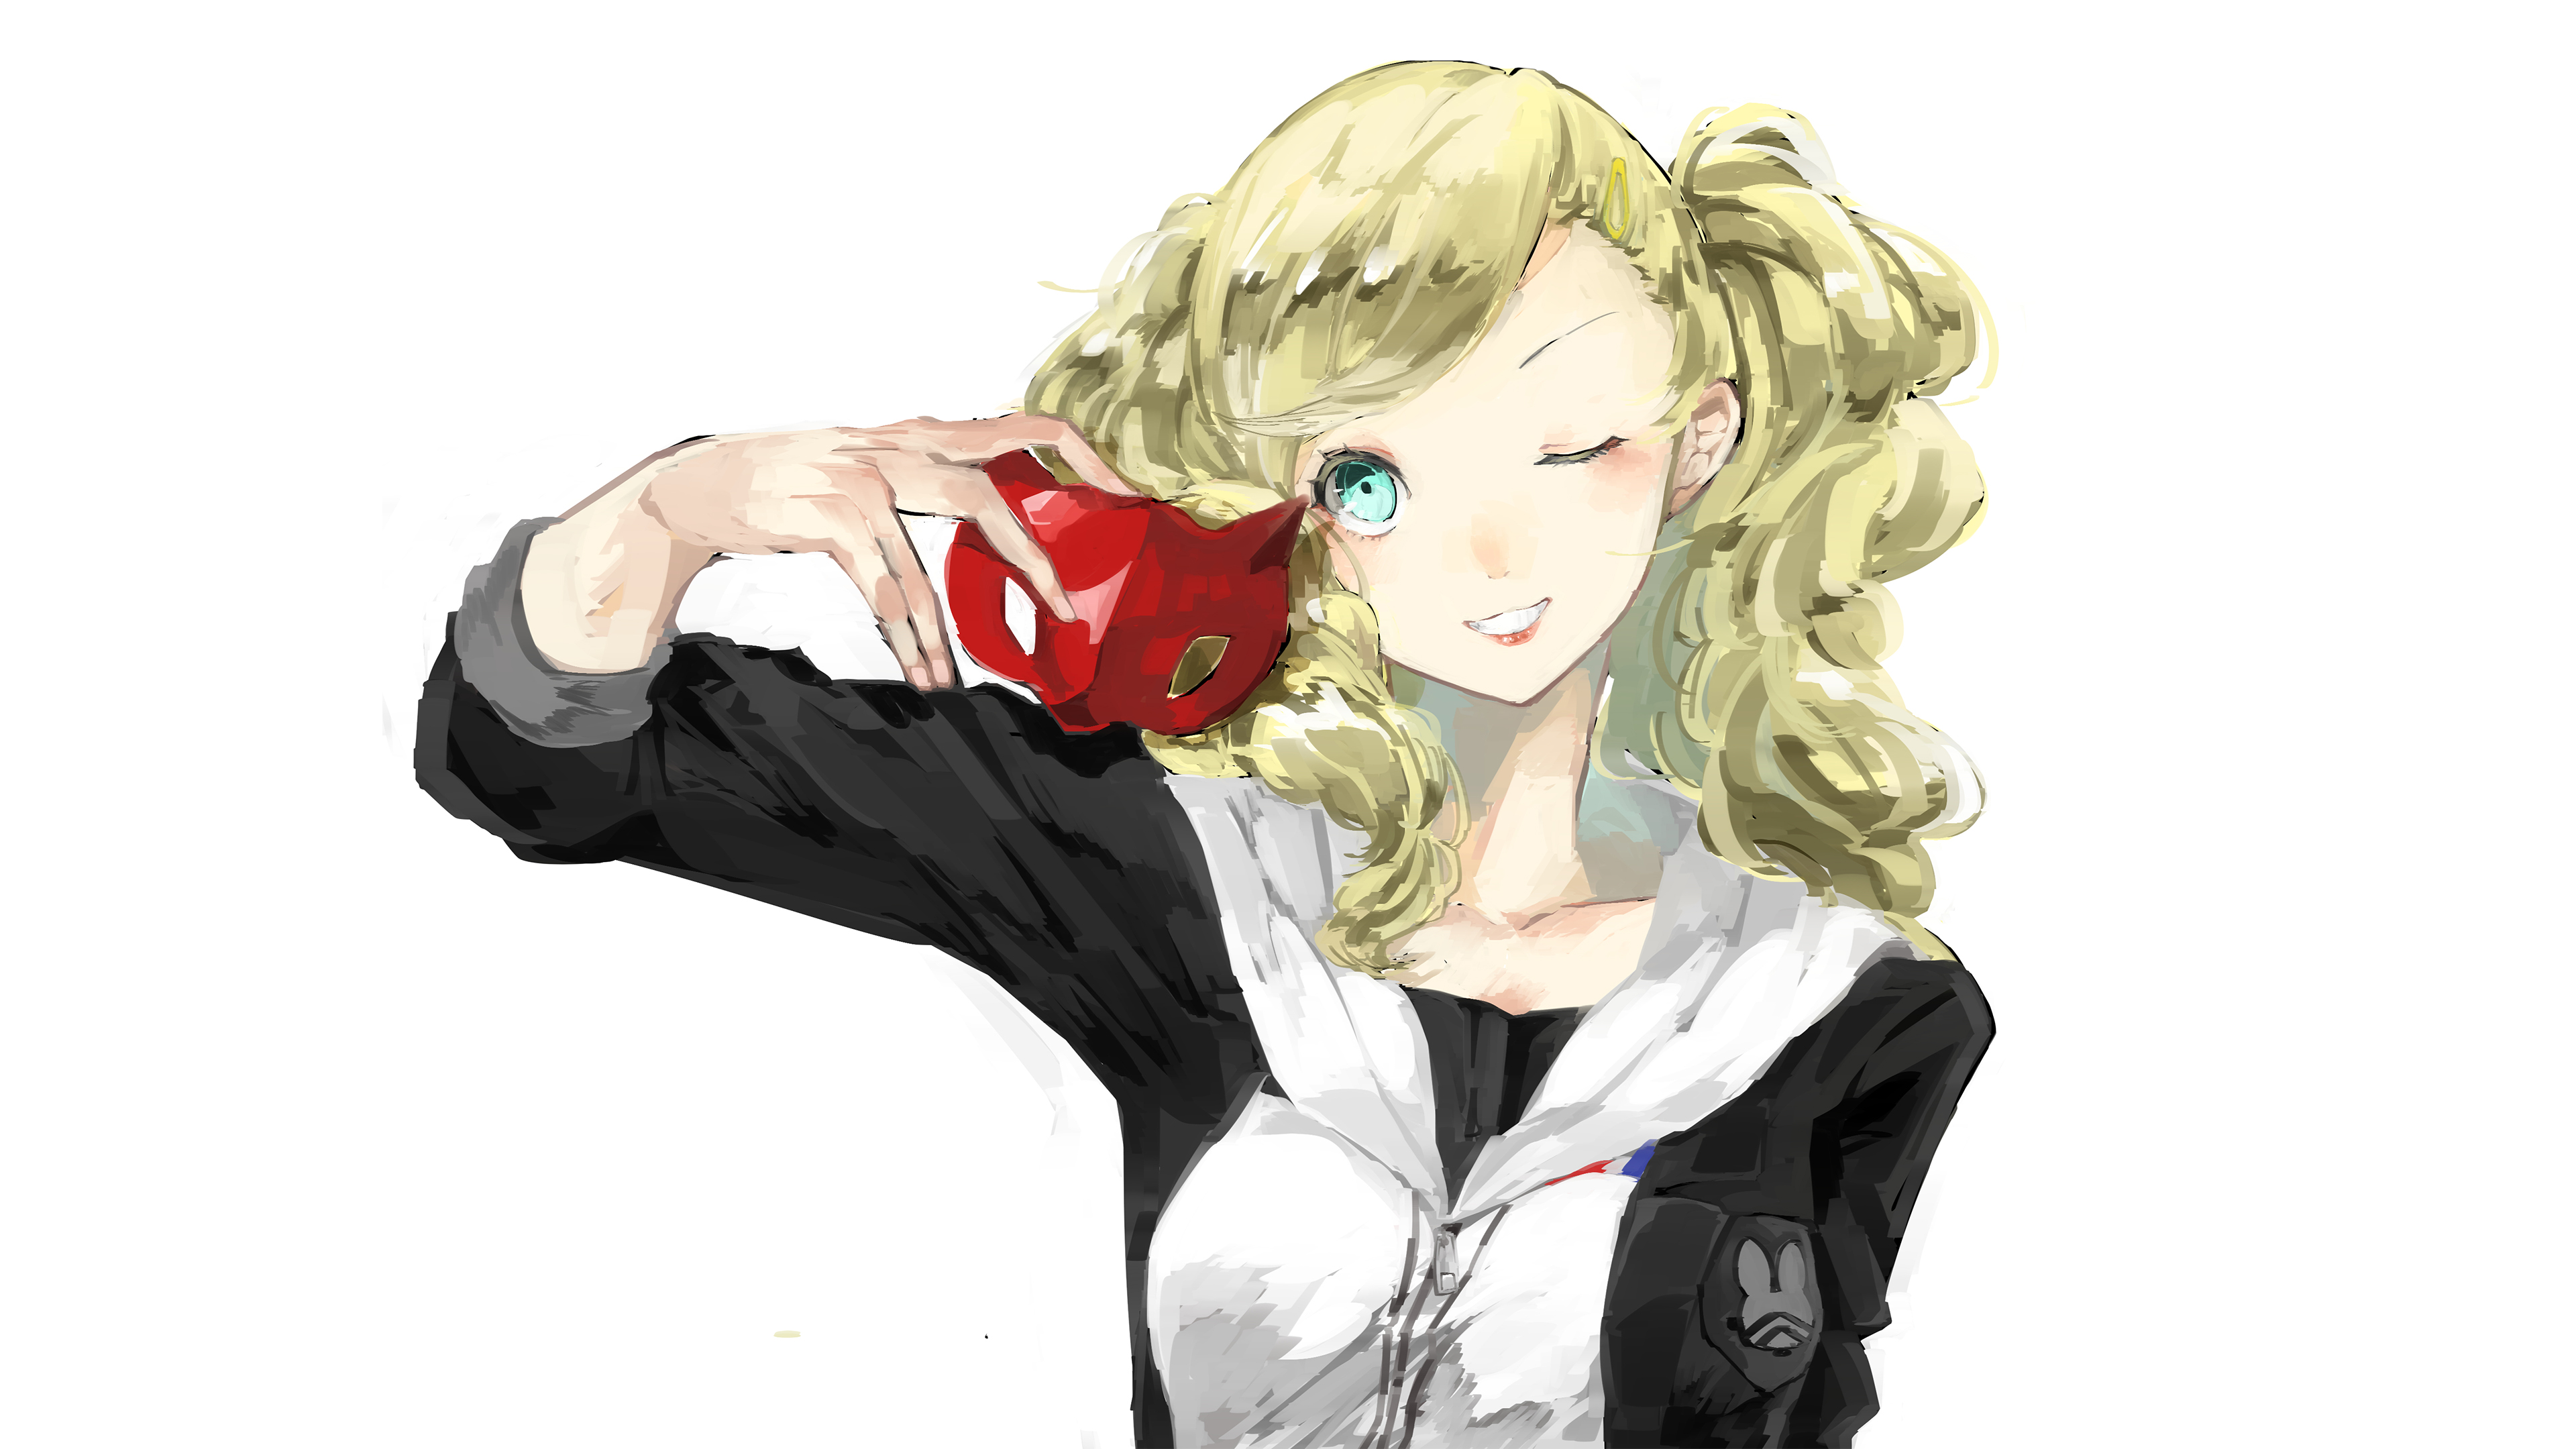 Persona 5 Ann Takamaki 4k Ultra Hd Wallpaper Background Image 3840x2160 Id 930399 Wallpaper Abyss